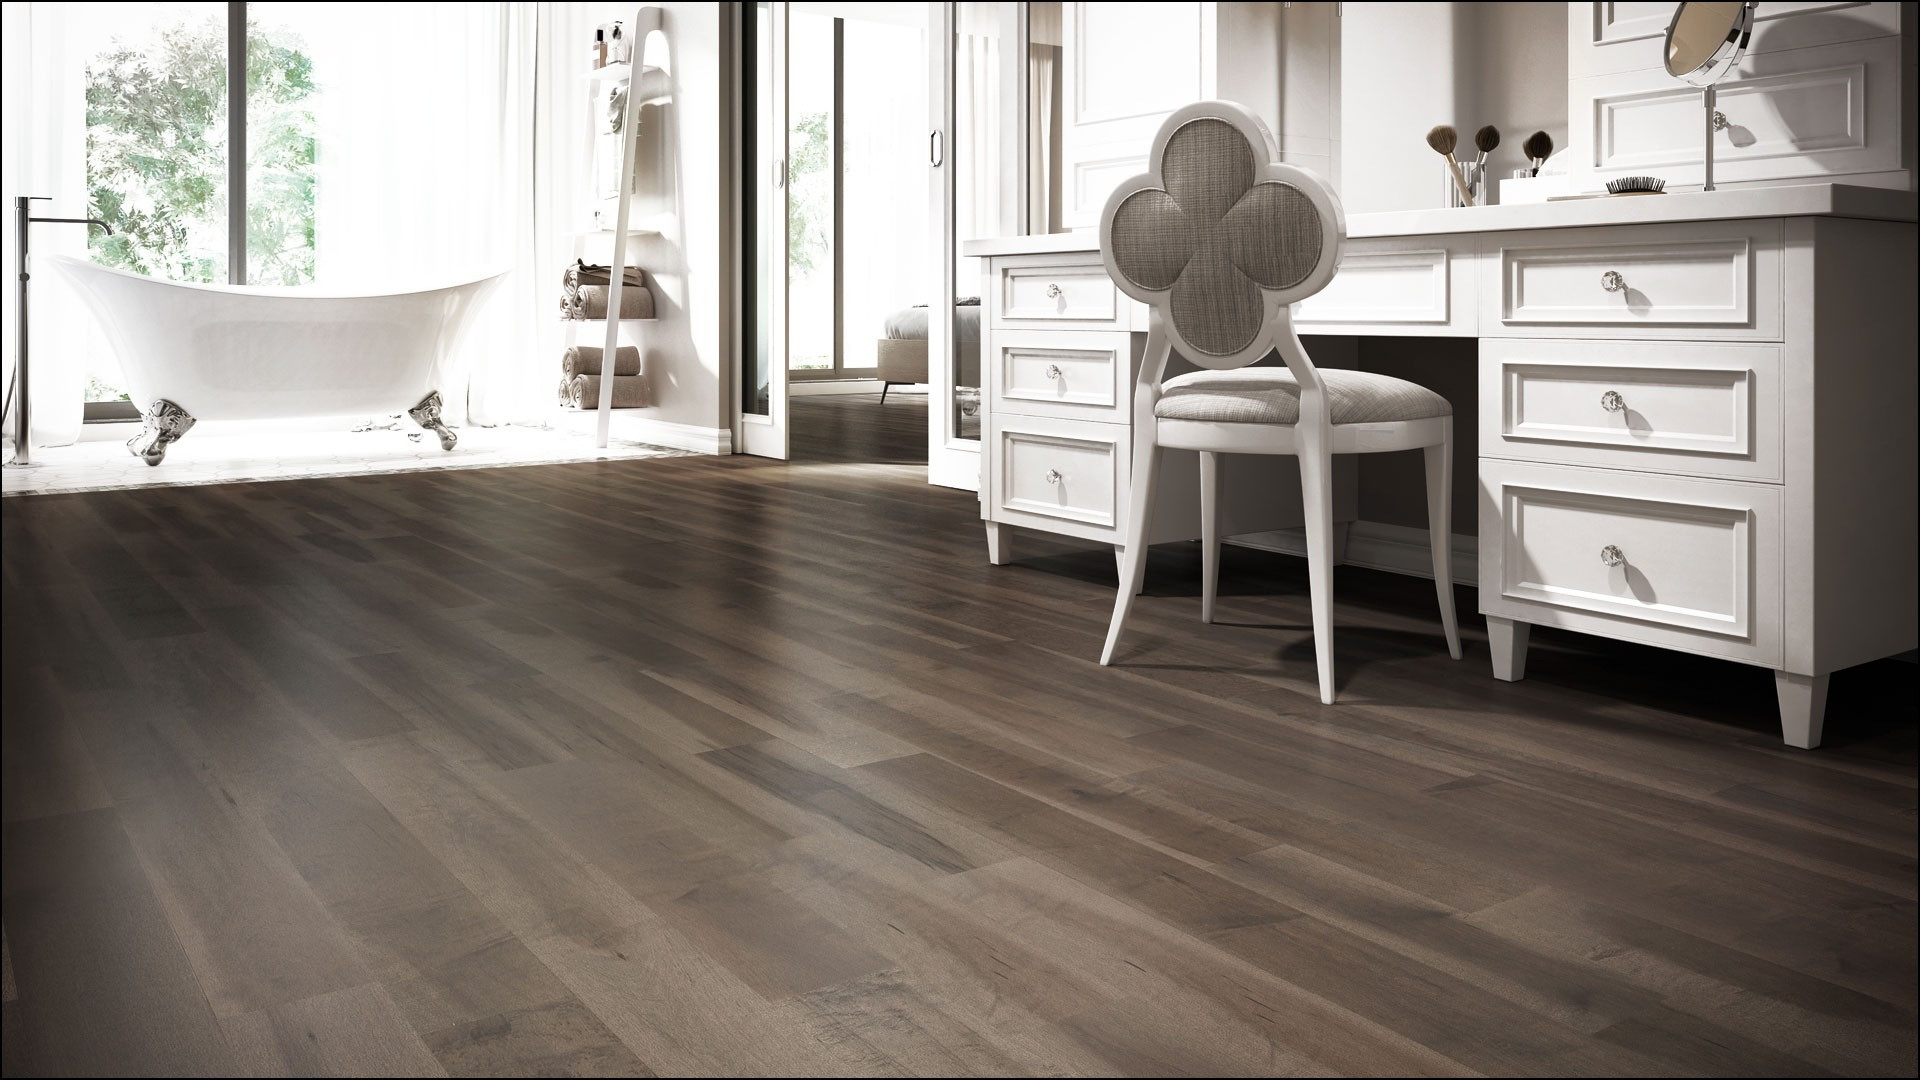 reclaimed hardwood flooring toronto of hardwood flooring suppliers france flooring ideas for hardwood flooring pictures in homes images black and white laminate flooring beautiful splendid exterior of hardwood